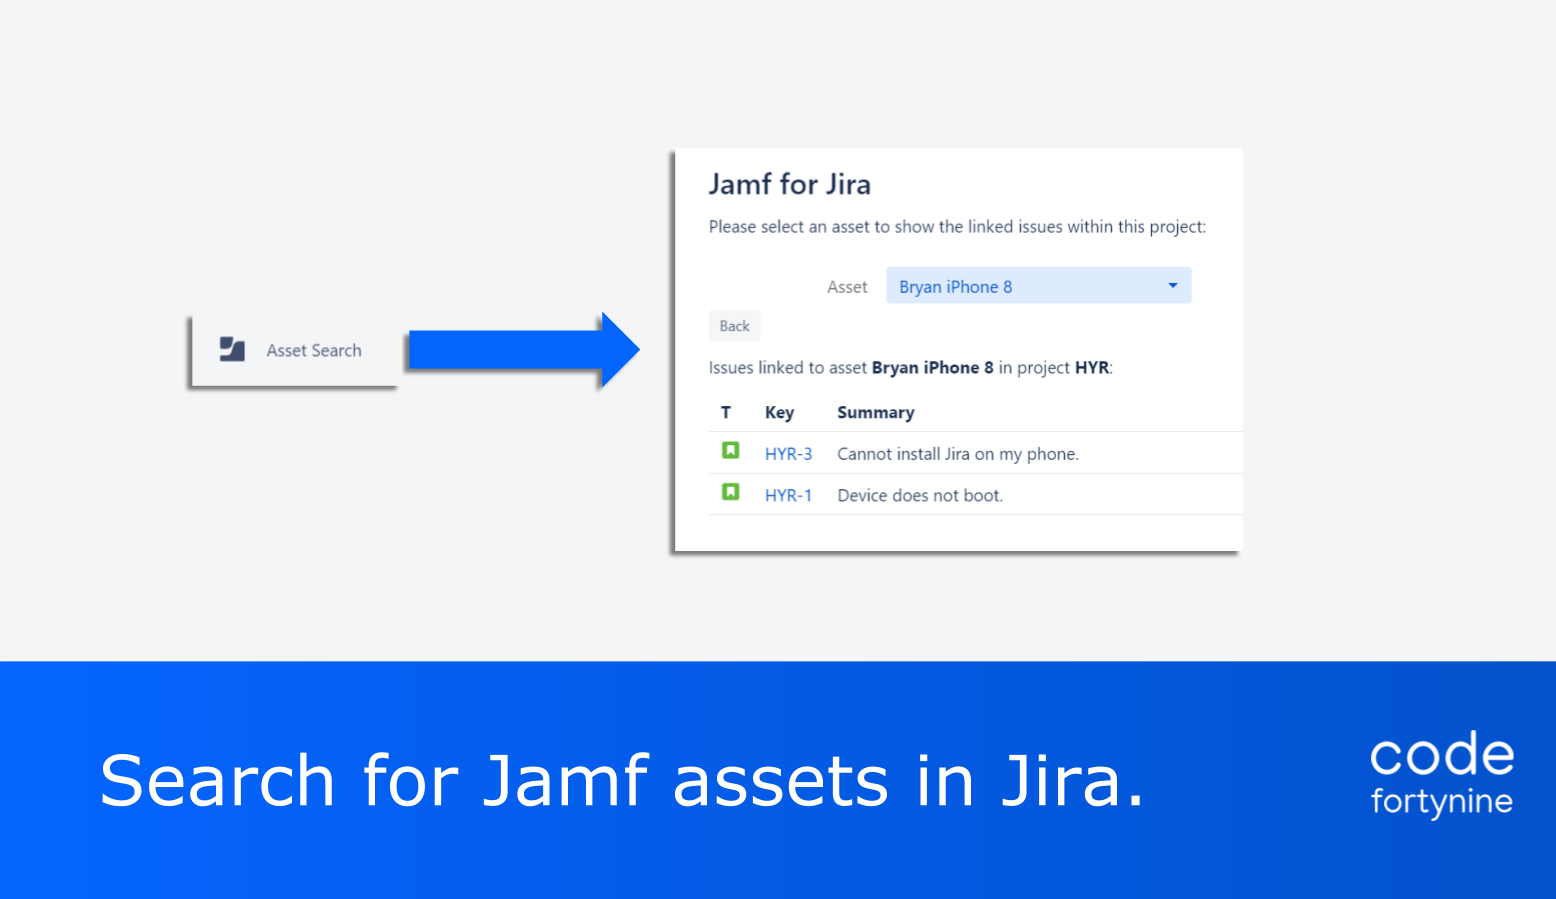 Highlight 3 Jamf for Jira